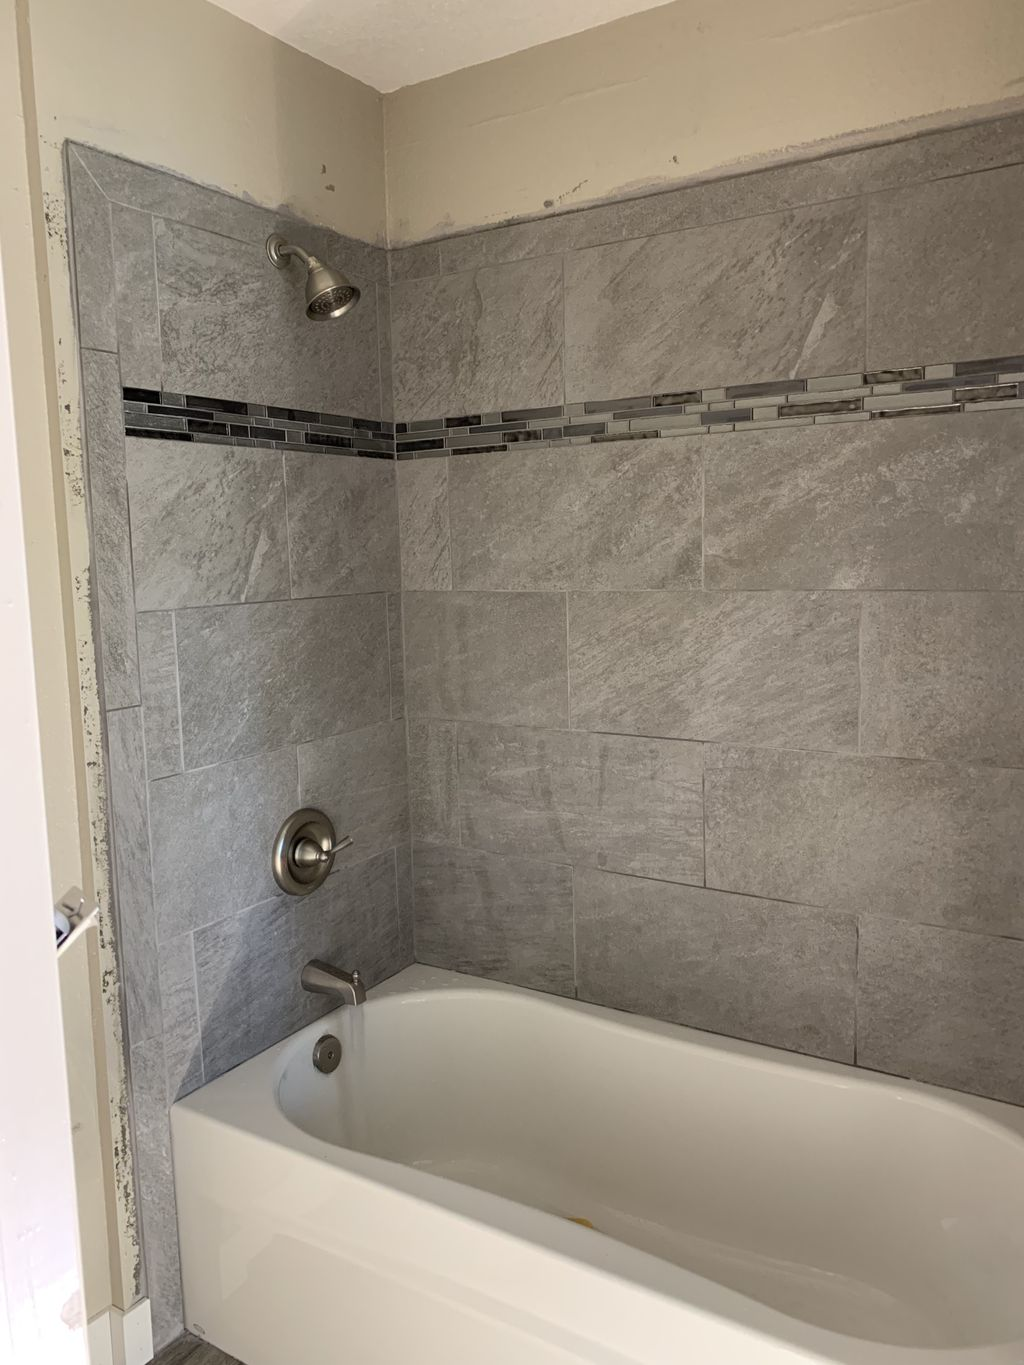 Bath and shower wall install